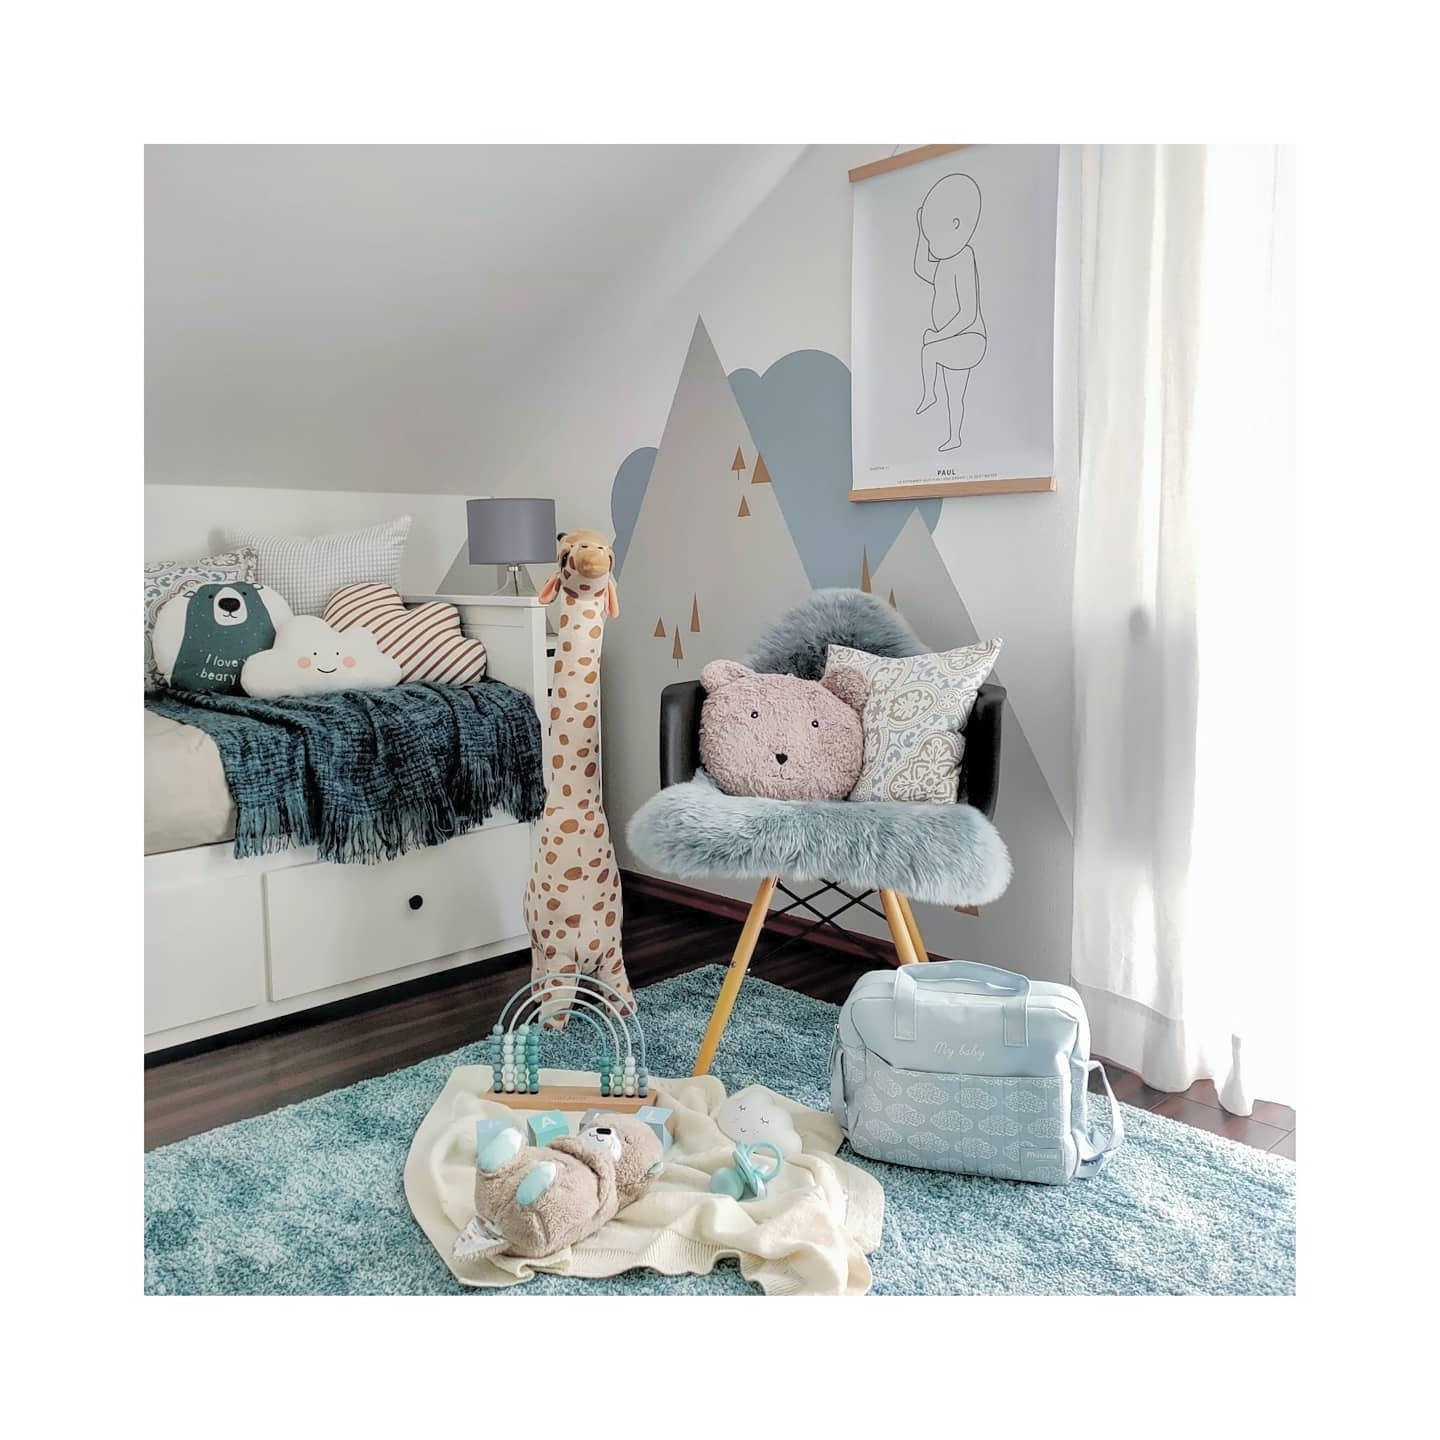 Kinderzimmer!!!!!